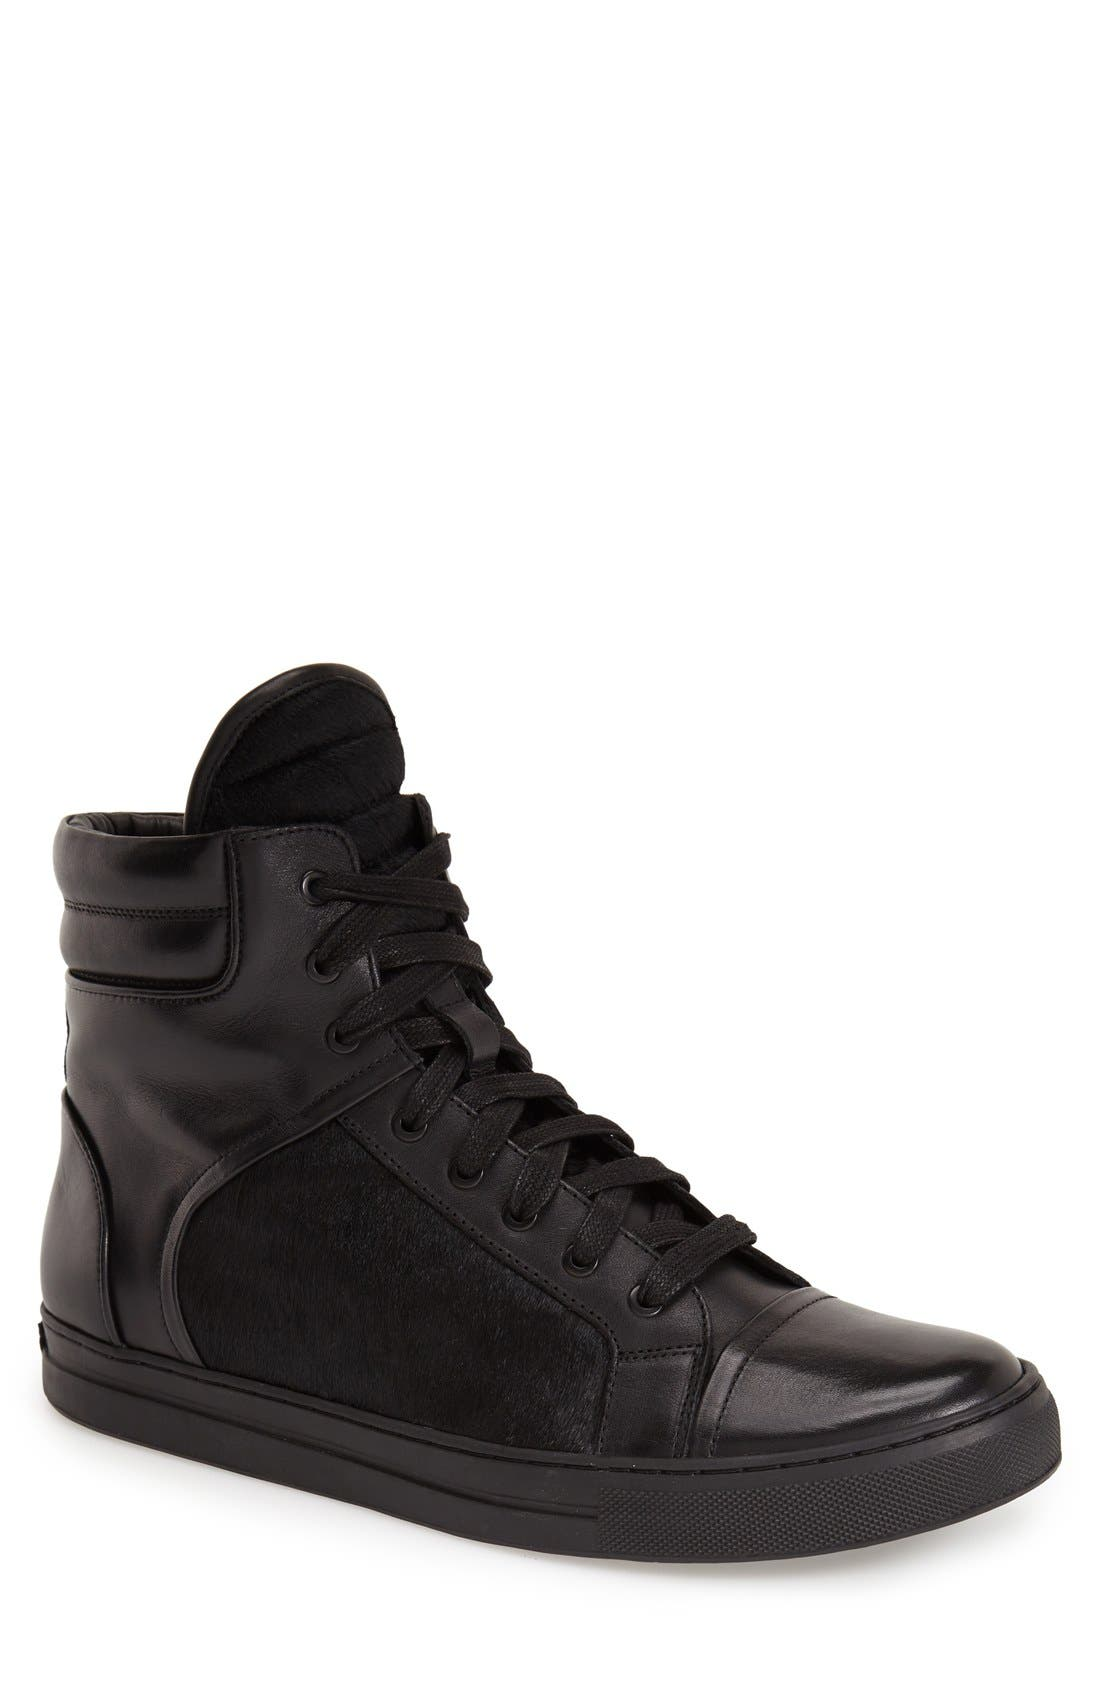 Main Image - Kenneth Cole New York 'Double Over' Zip High Top Sneaker (Men)